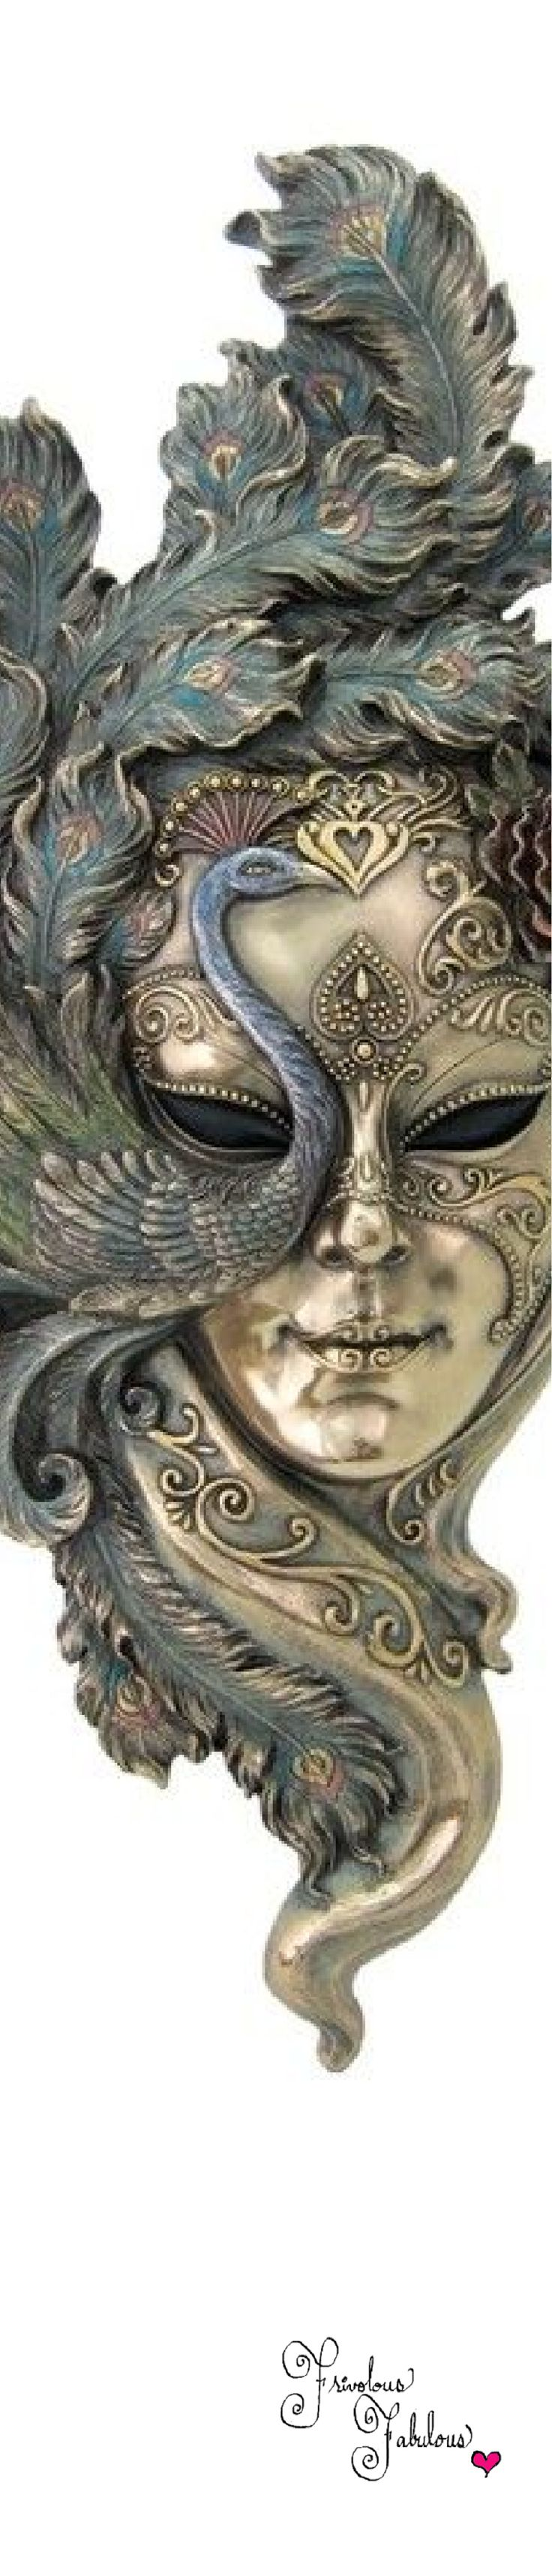 The 139 best images about MASQUER.... on Pinterest   Posts, The ...